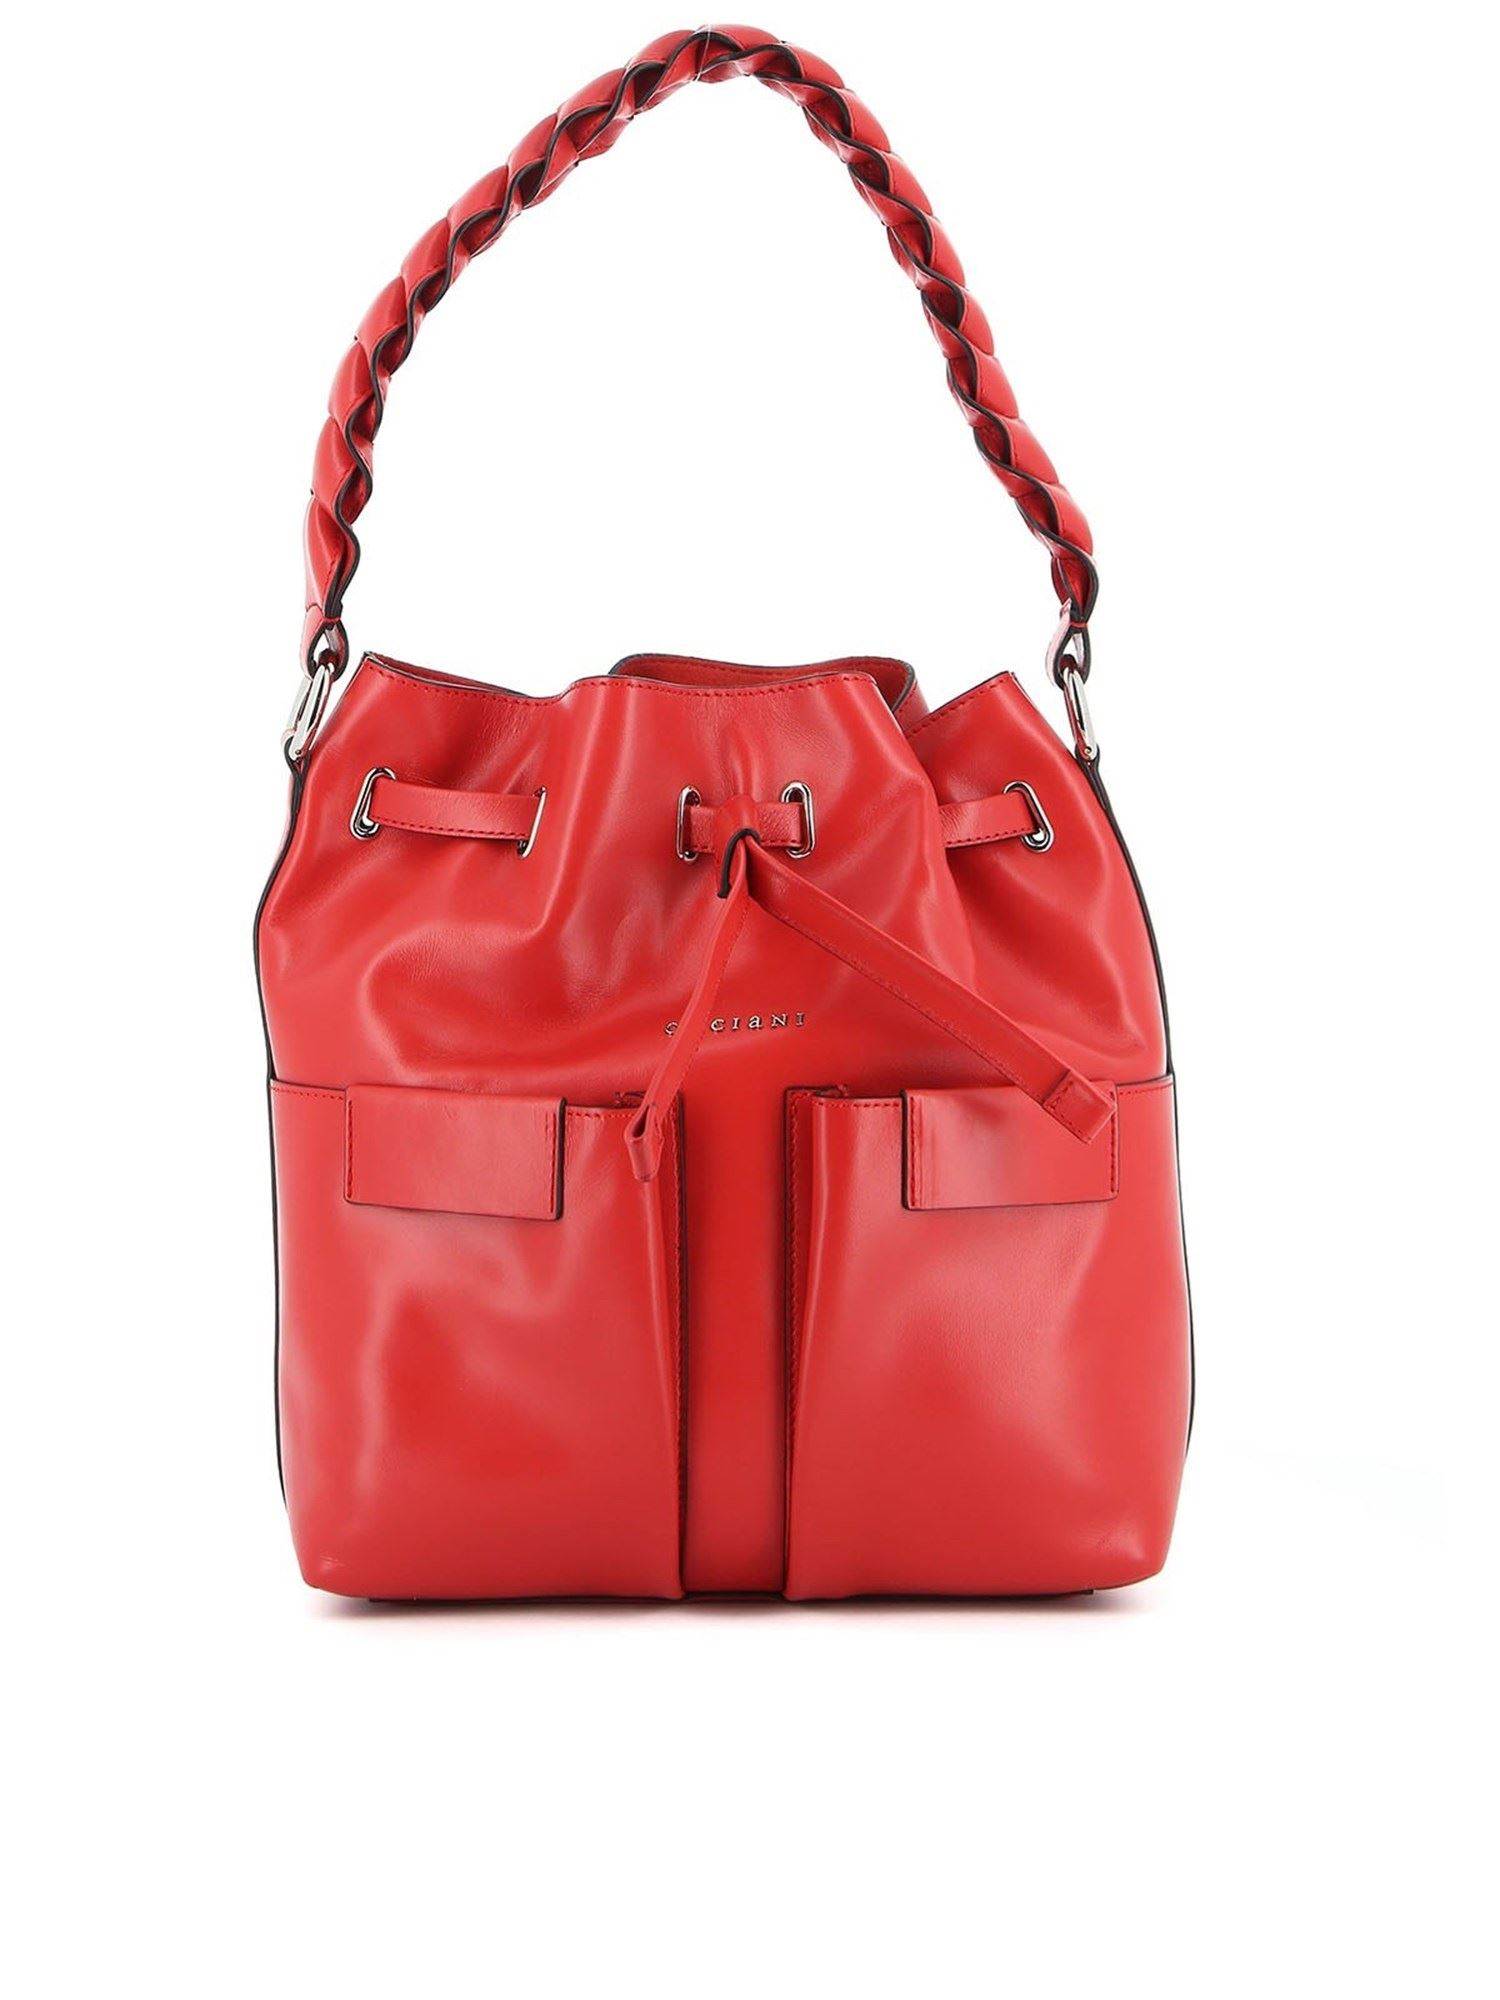 Orciani Leathers TESSA LIBERTY MEDIUM BAG IN RED